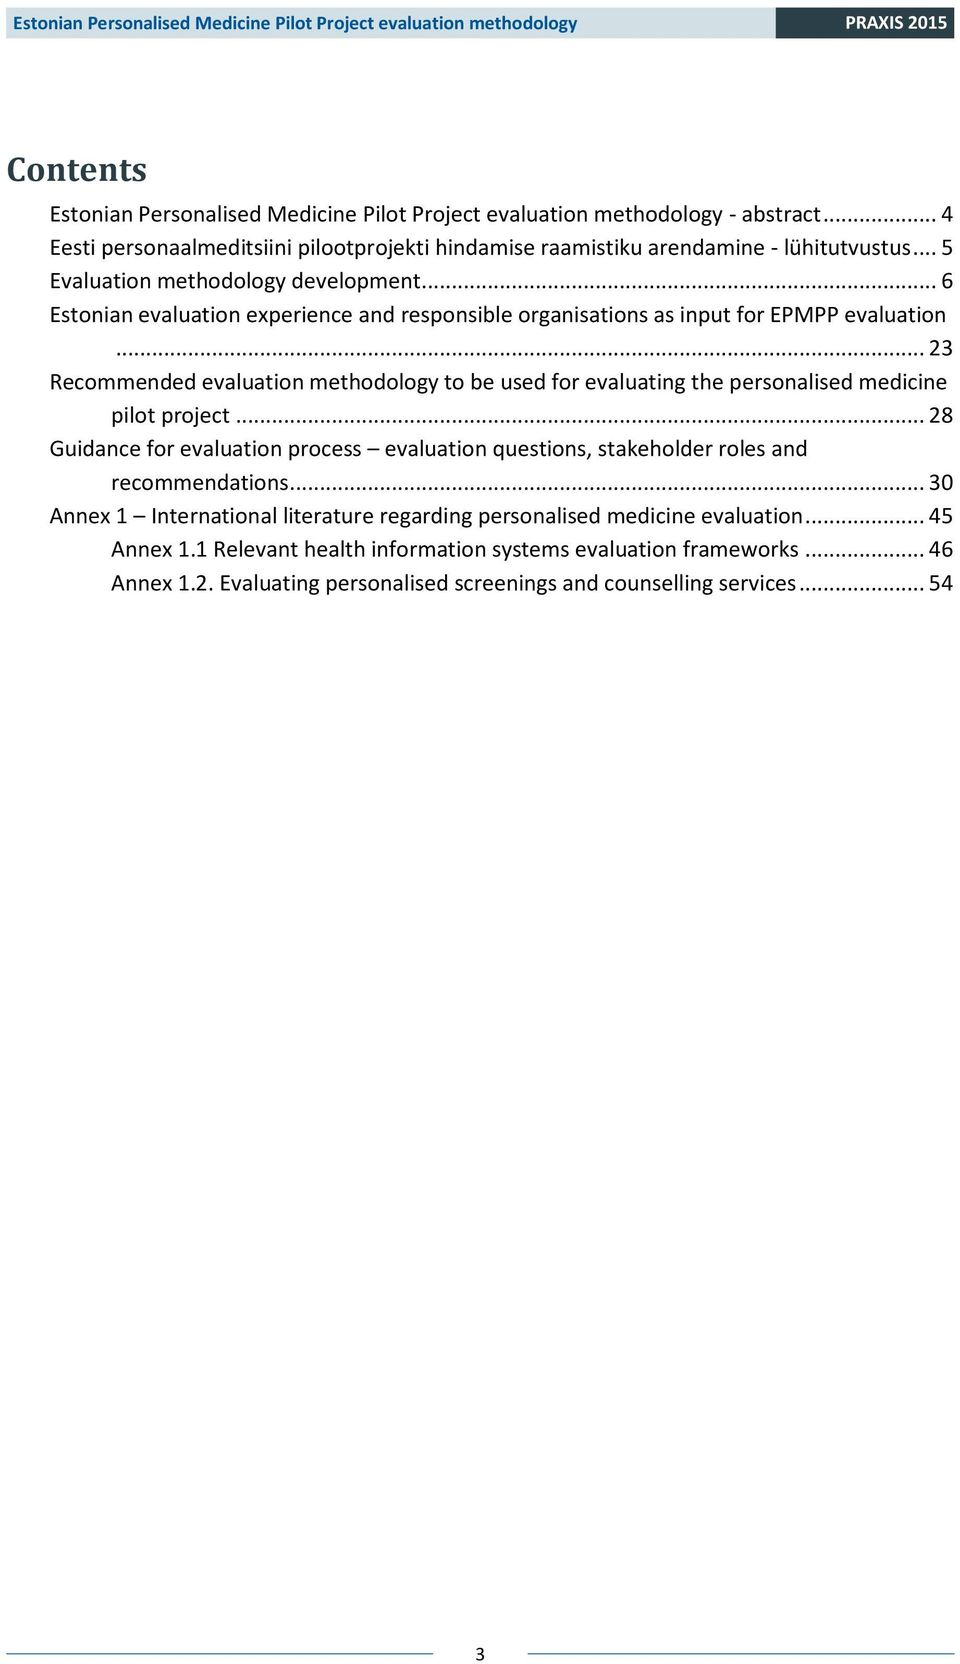 .. 23 Recommended evaluation methodology to be used for evaluating the personalised medicine pilot project.